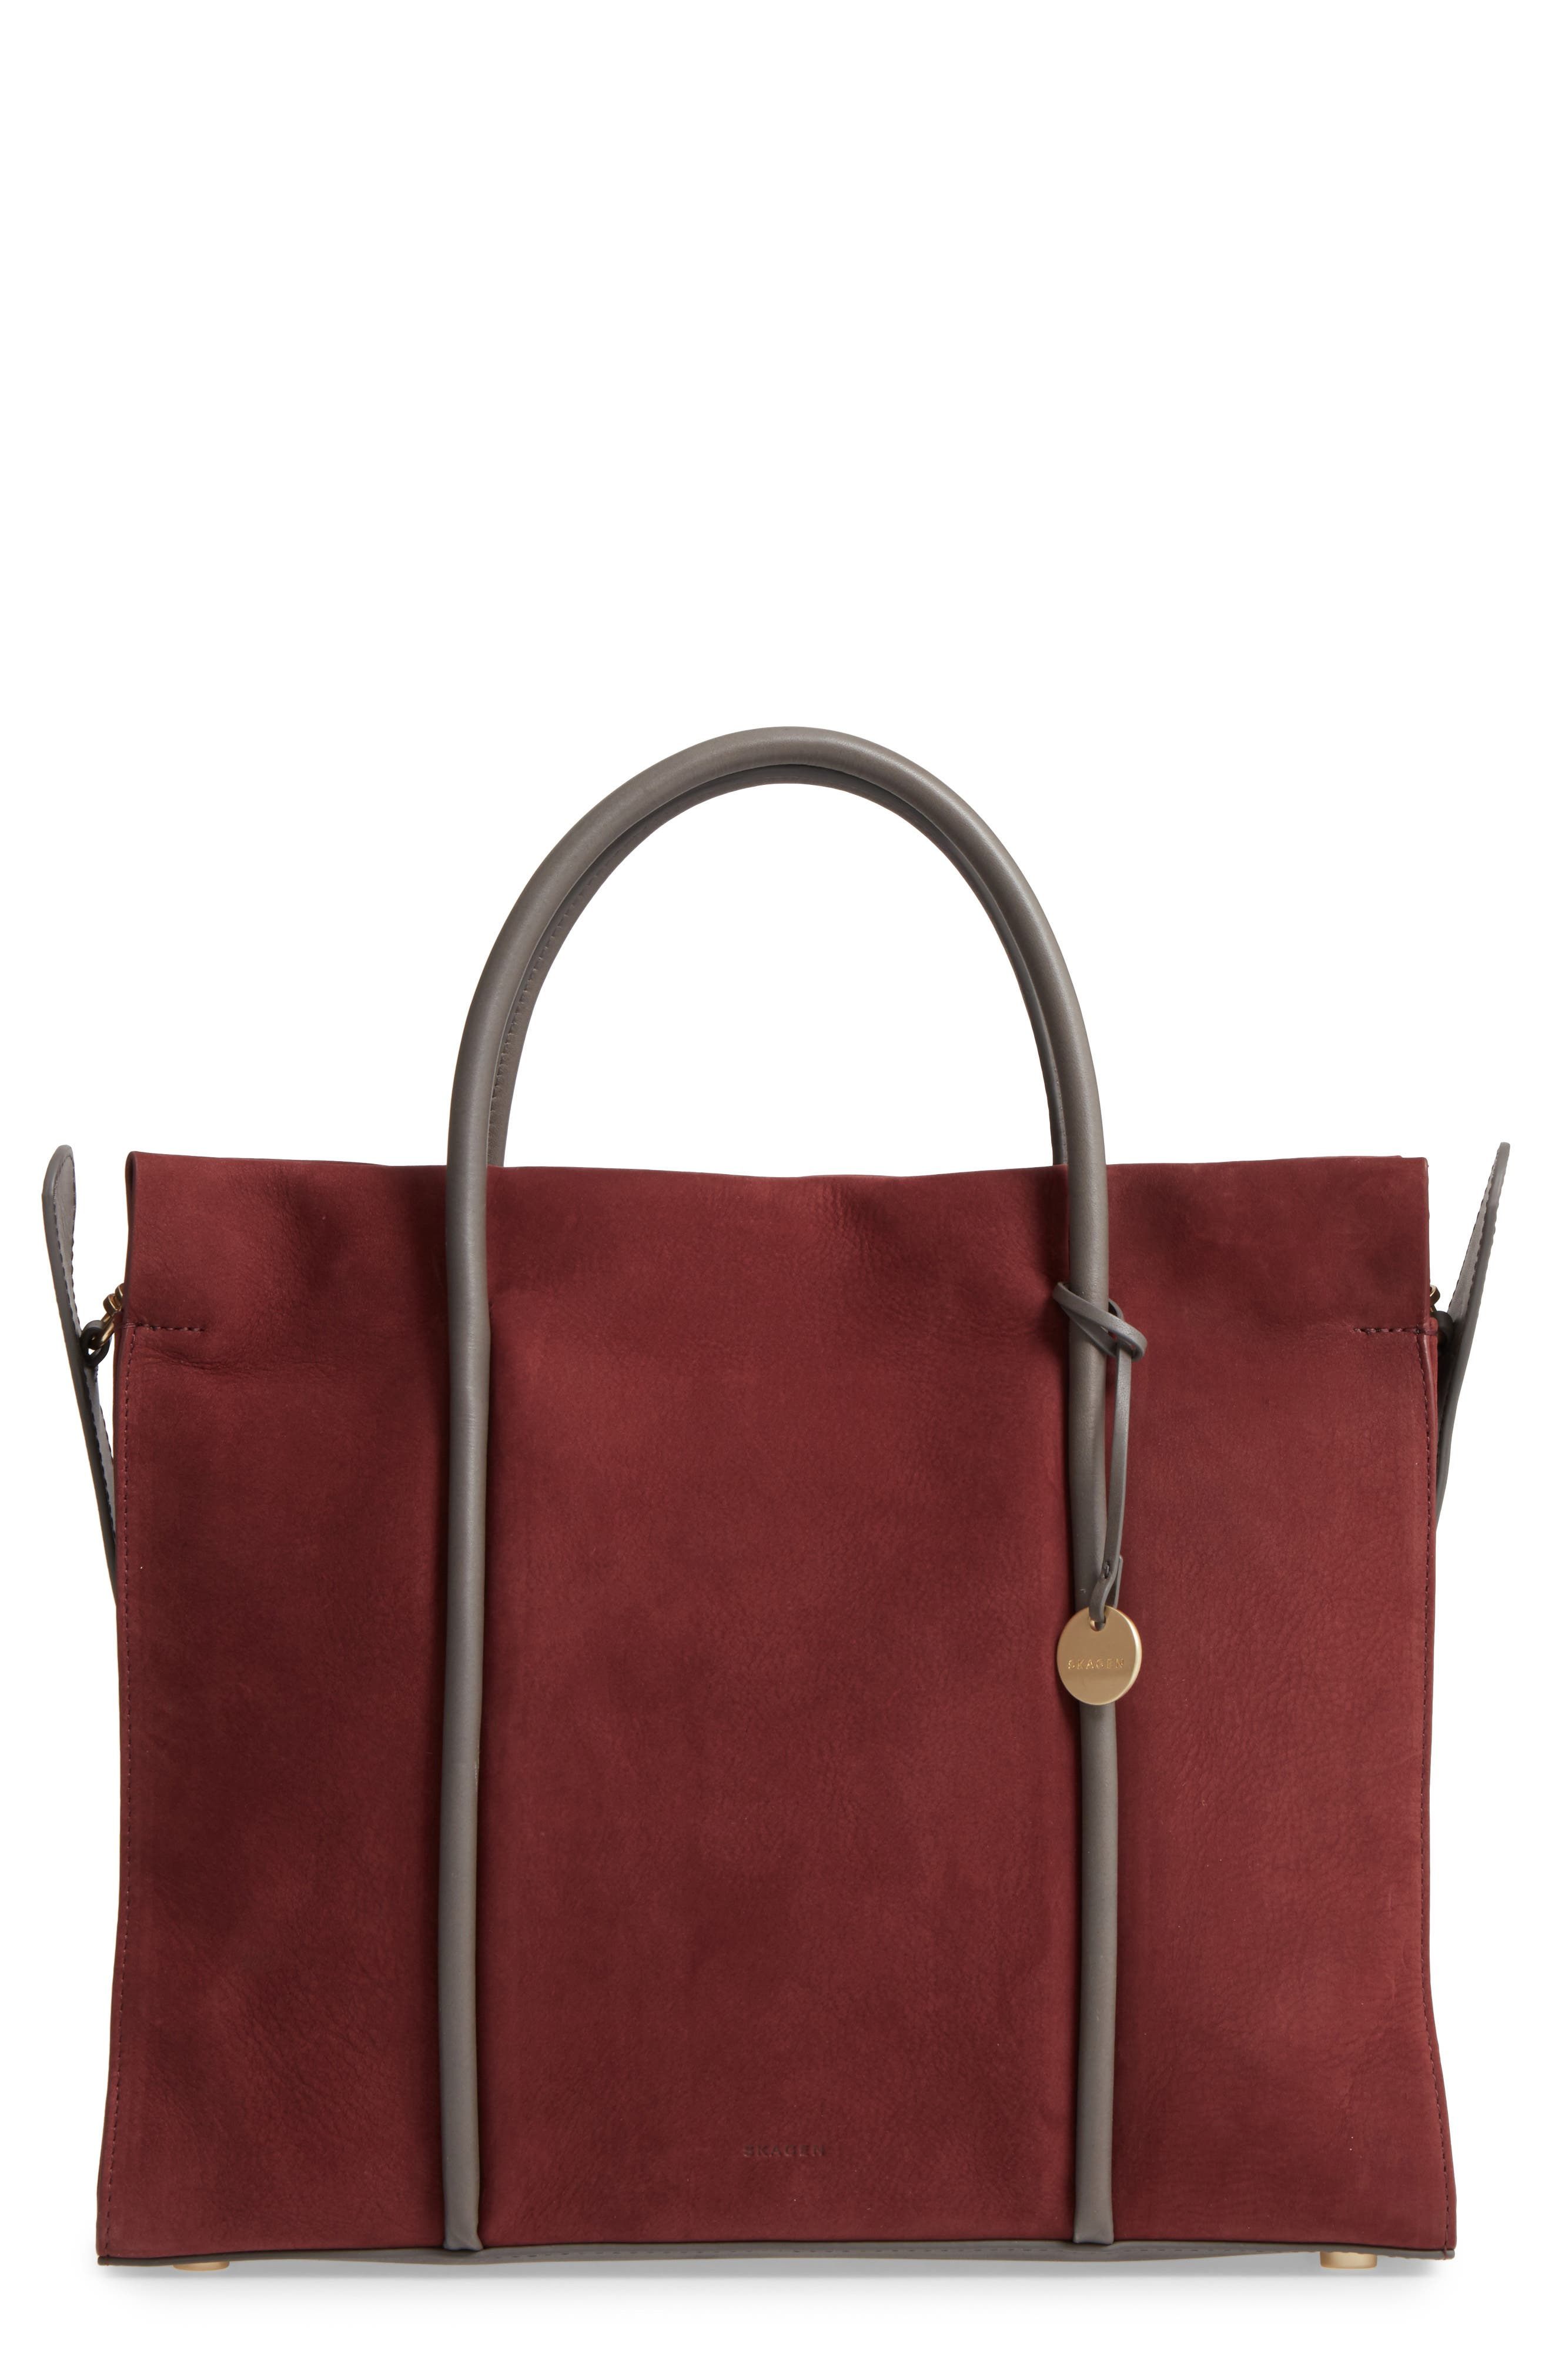 Katryn Recessed Nubuck Leather Satchel,                             Main thumbnail 1, color,                             603